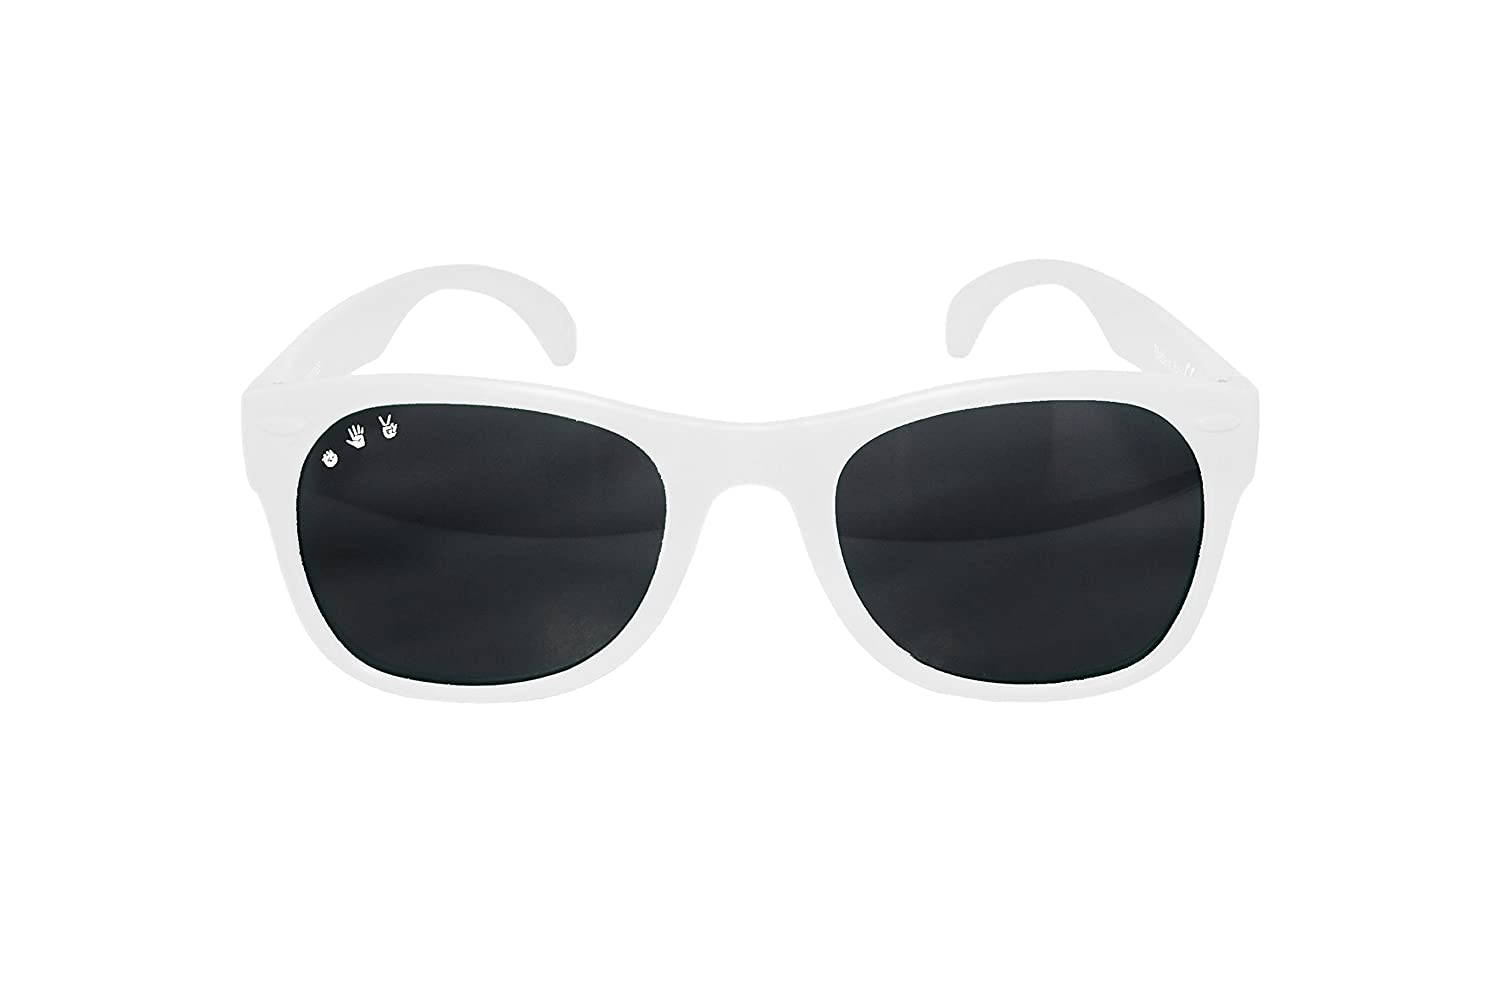 McFly//Red Roshambo Baby Shades Unbreakable Sunglasses 100/% UVA//UVB Protection for Babies 0-18months